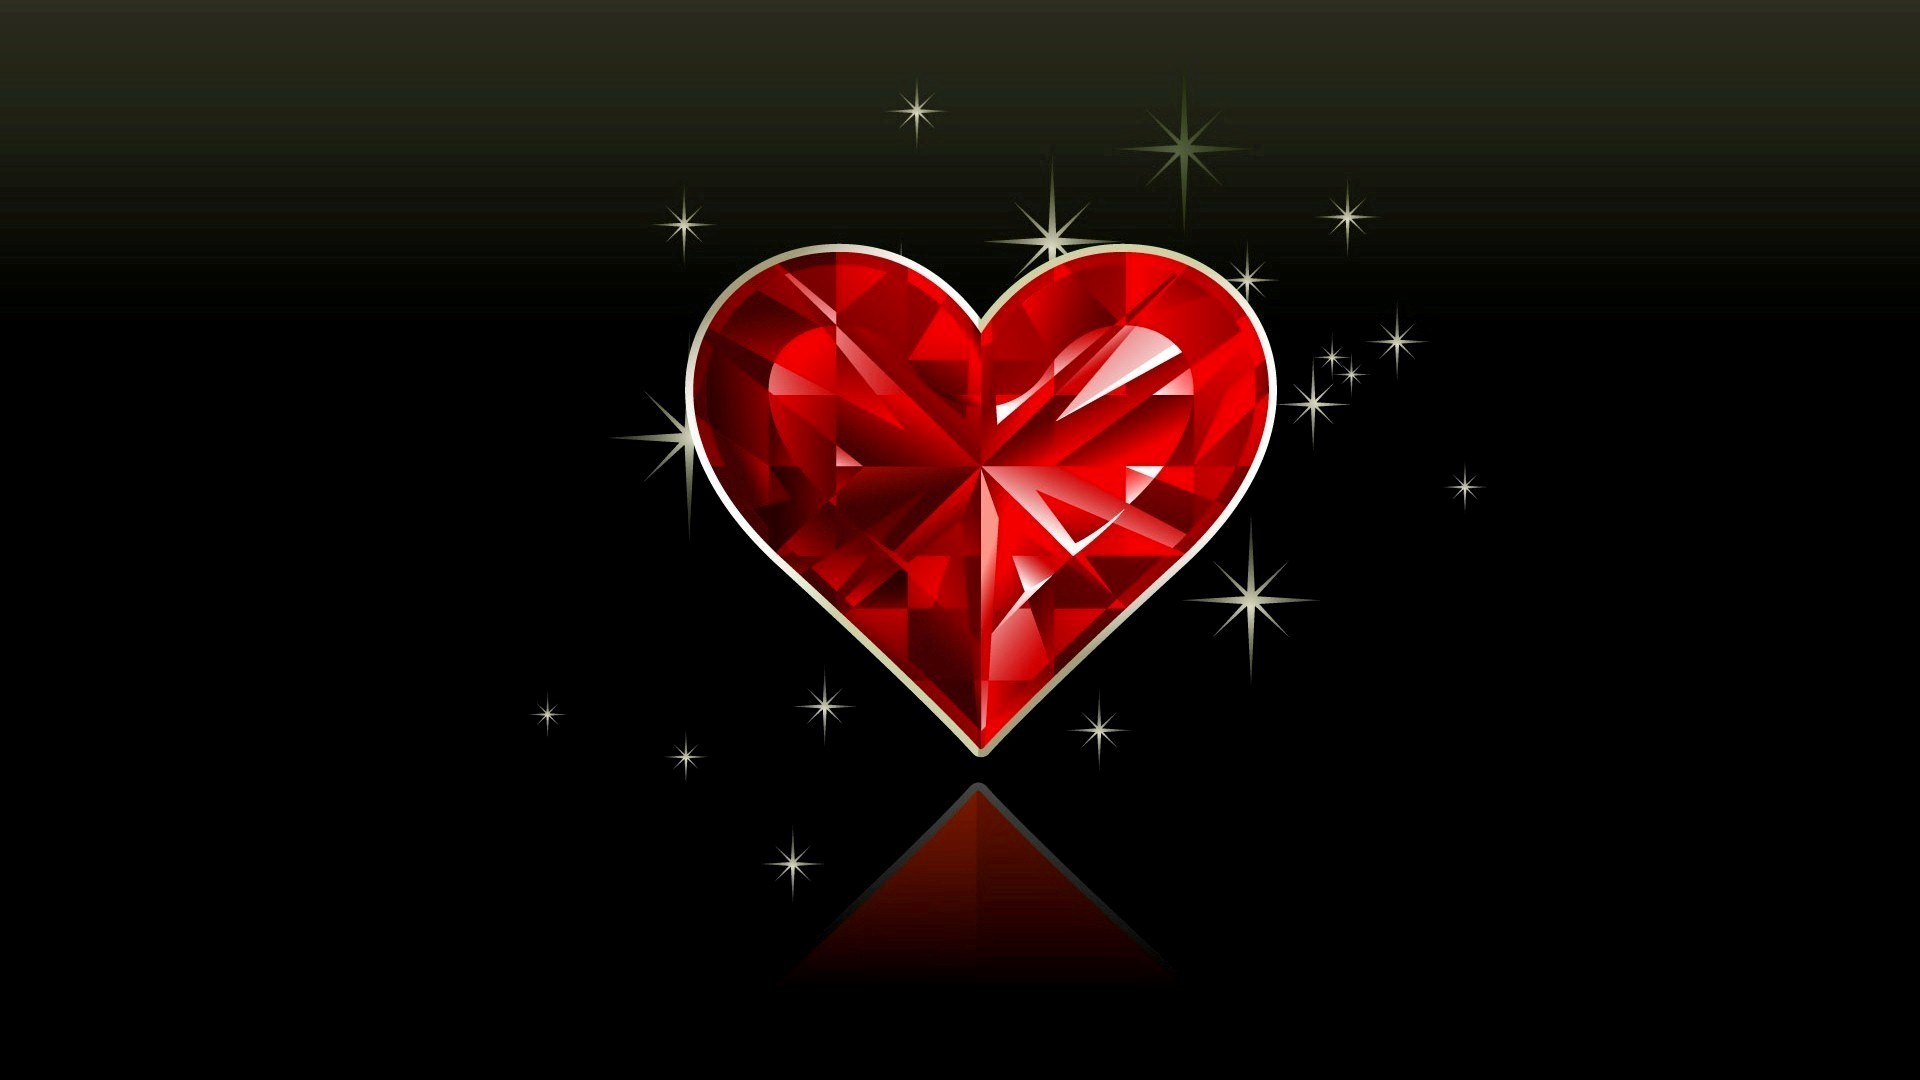 Red Crystal Heart in Black Background